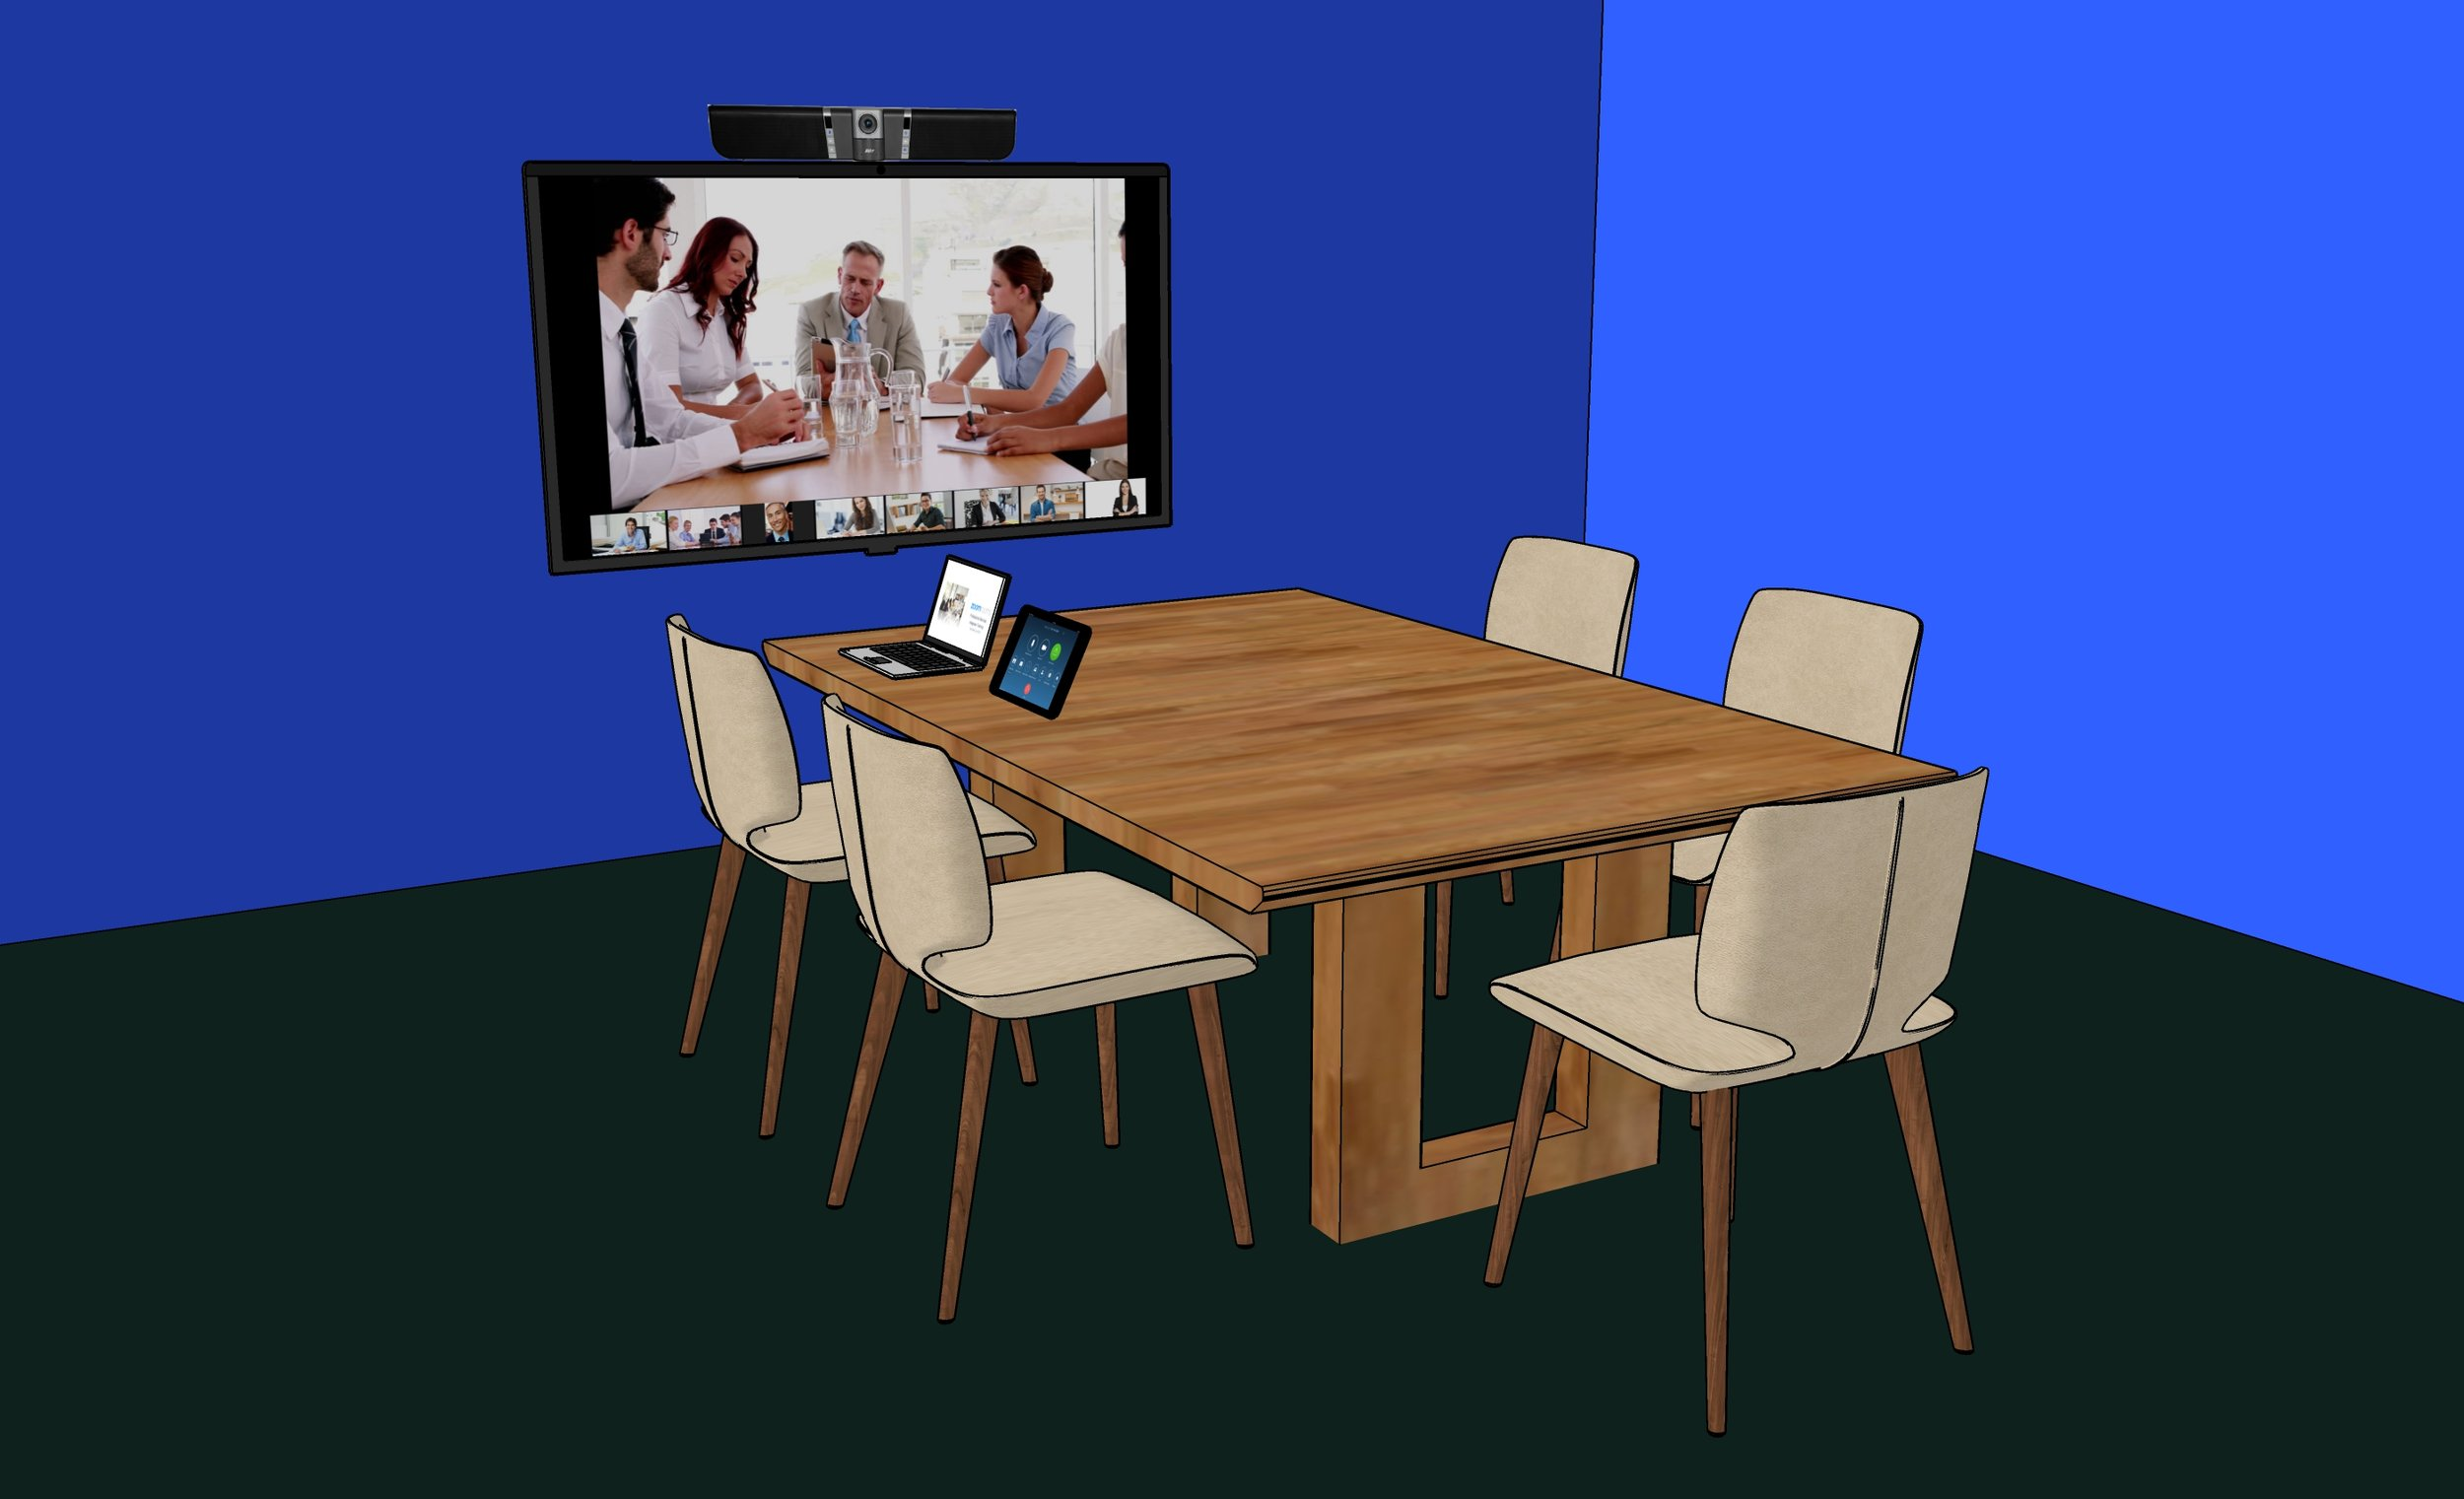 Huddle Room - Room Size: 2-7 peopleFor a huddle room sitting 2-7 people we recommend 1 TV display, an integrated camera, microphone and speaker device such as the Aver VB342, which connects to the Zoom Rooms computer. All equipment is wall-mounted behind the display allowing for easy access and installation.An iPad at the table is used as a room controller along with another optional iPad at the door as the room scheduling display.